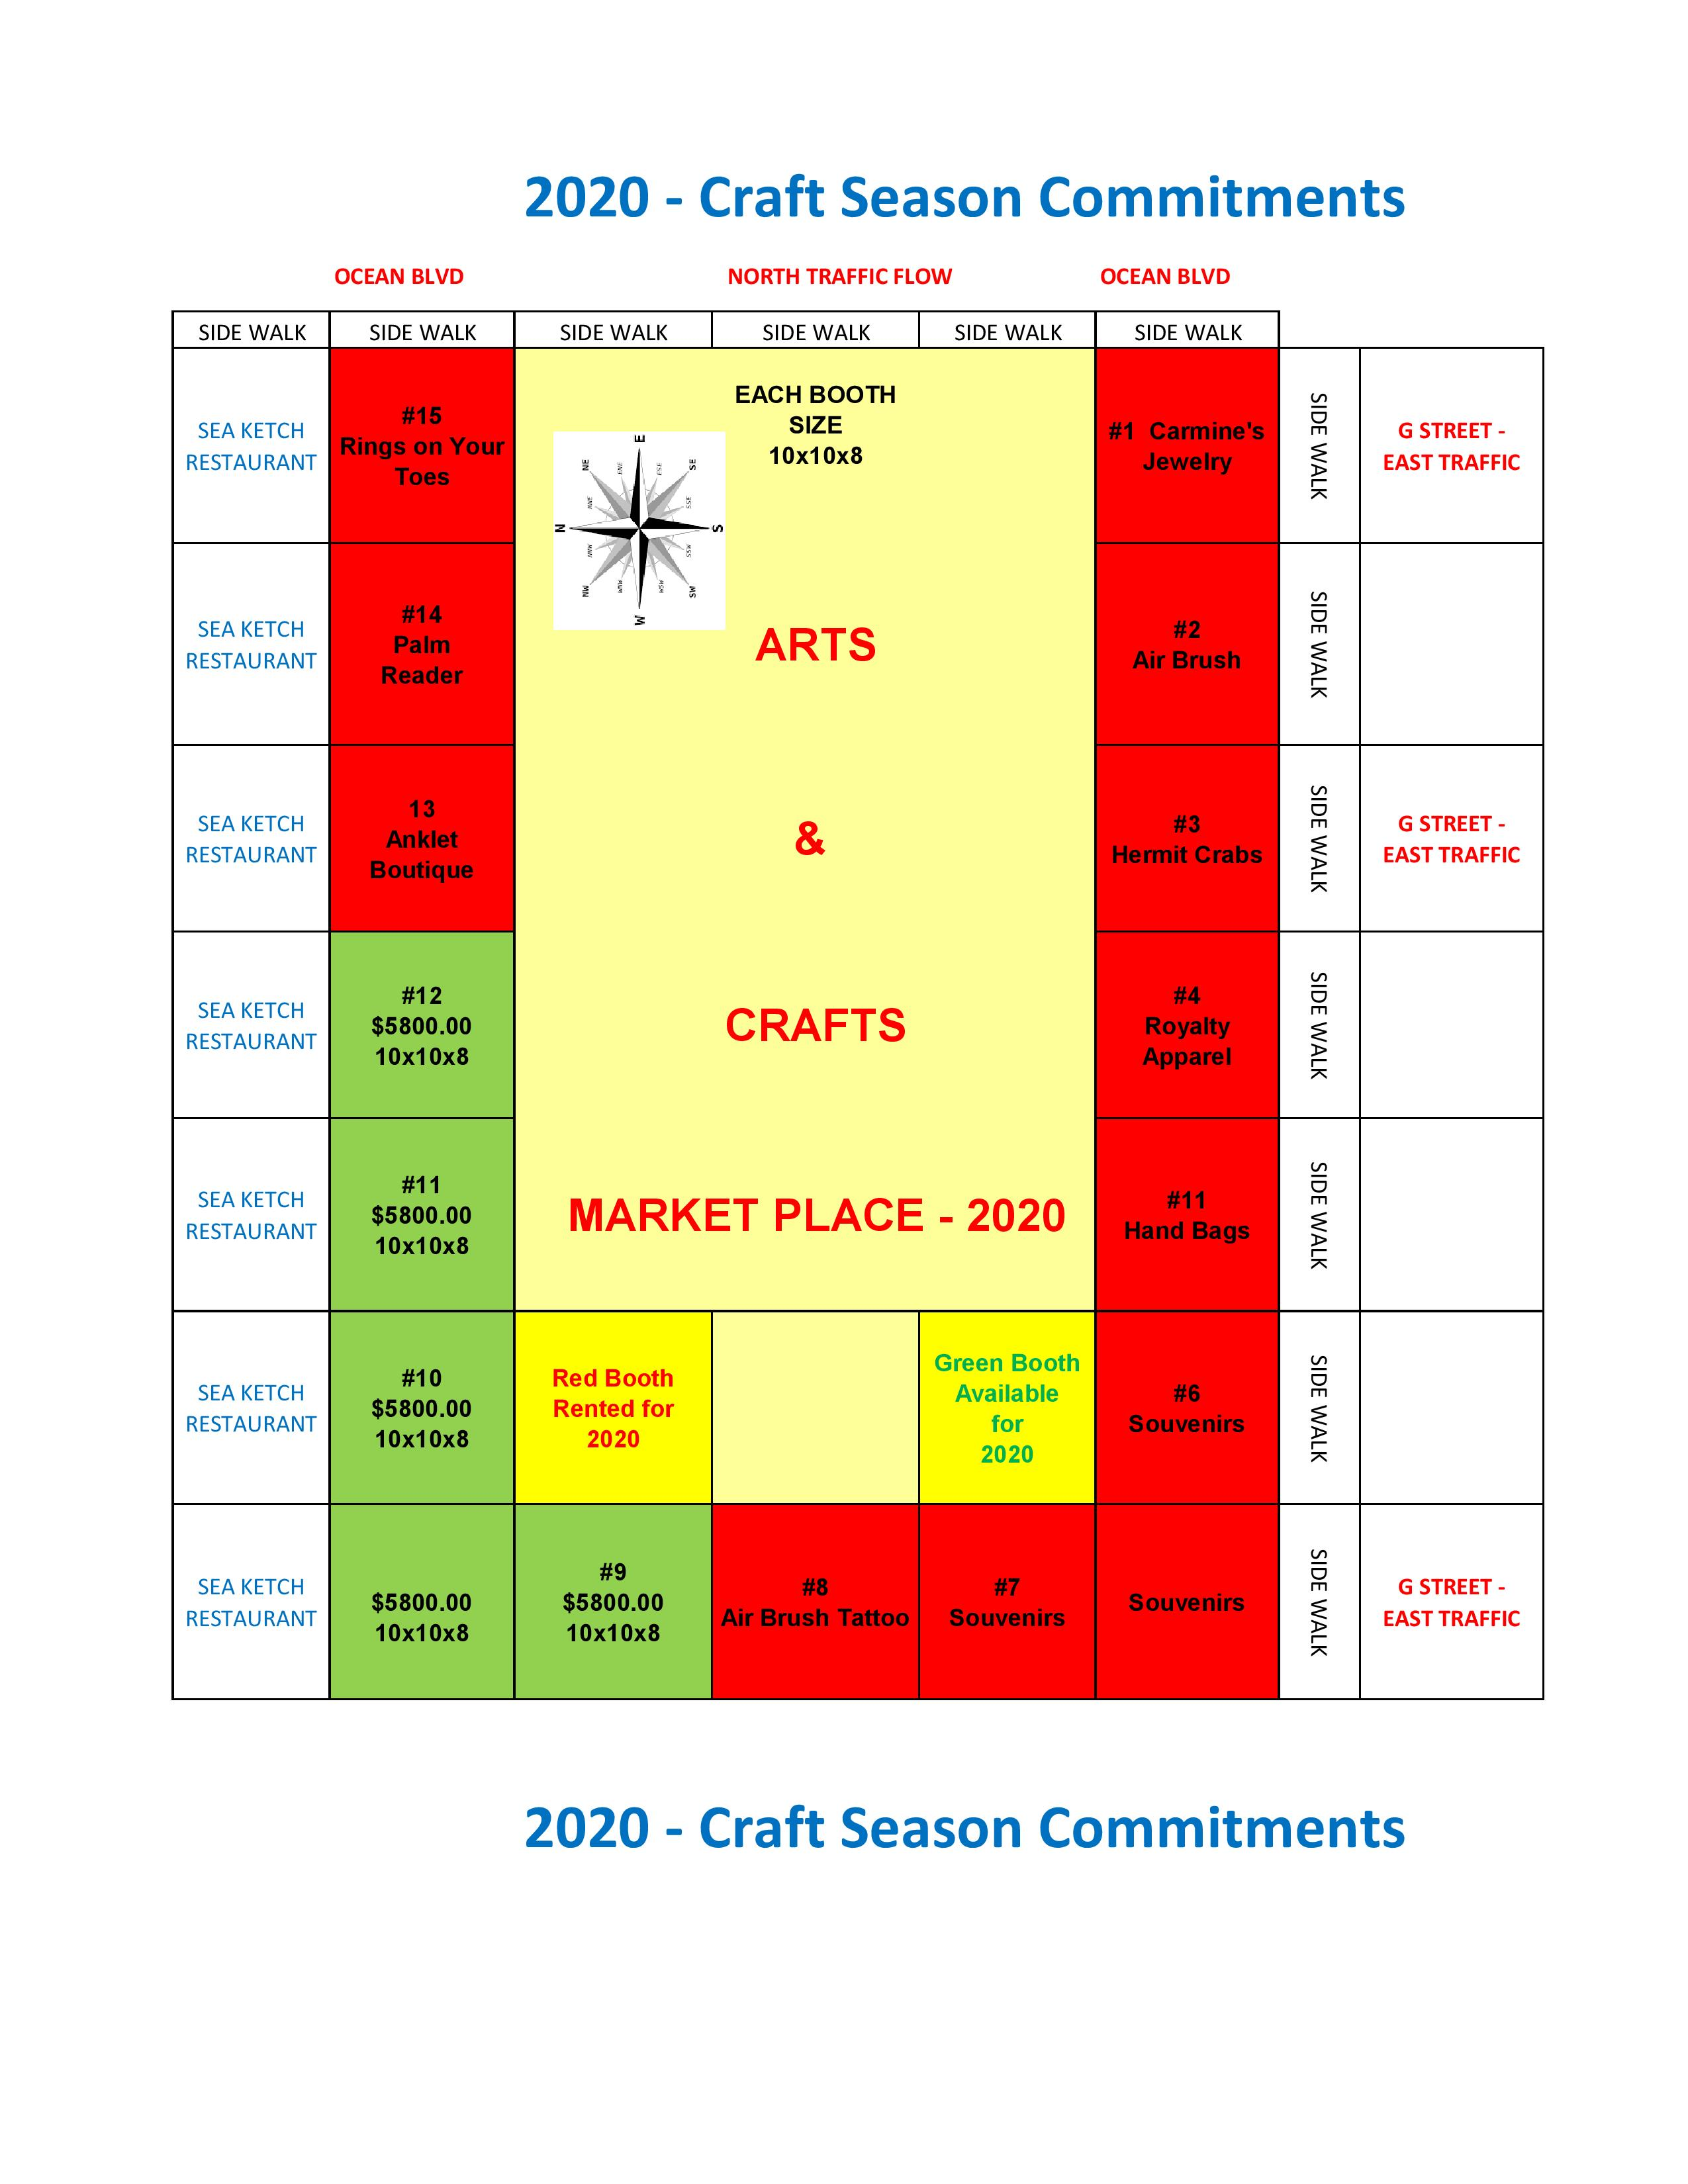 2020 Craft season commitments. Arts and crafts market place 2020, see PDF for redable version